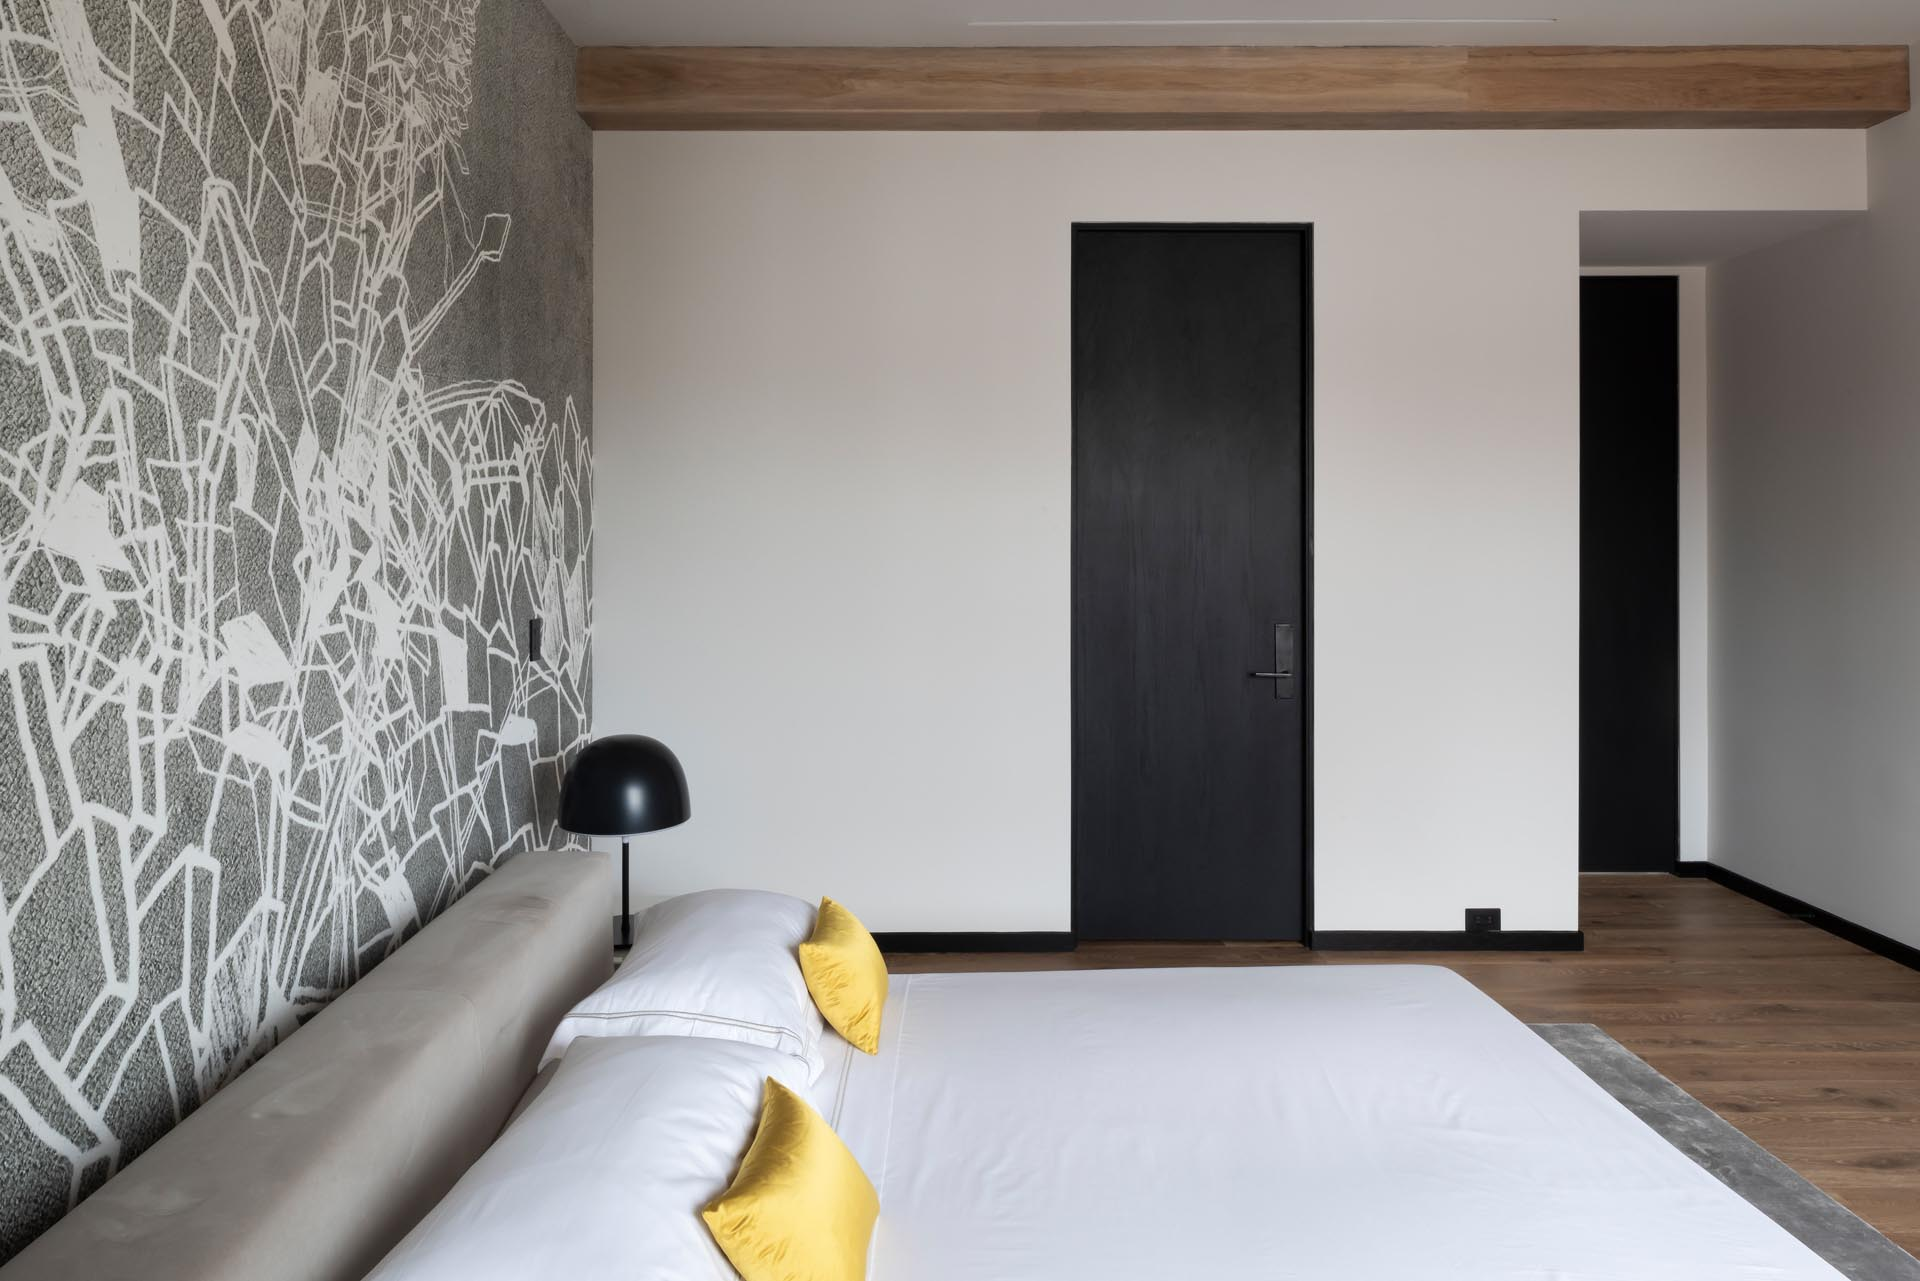 A modern bedroom with a gray and white geometric wallpaper.